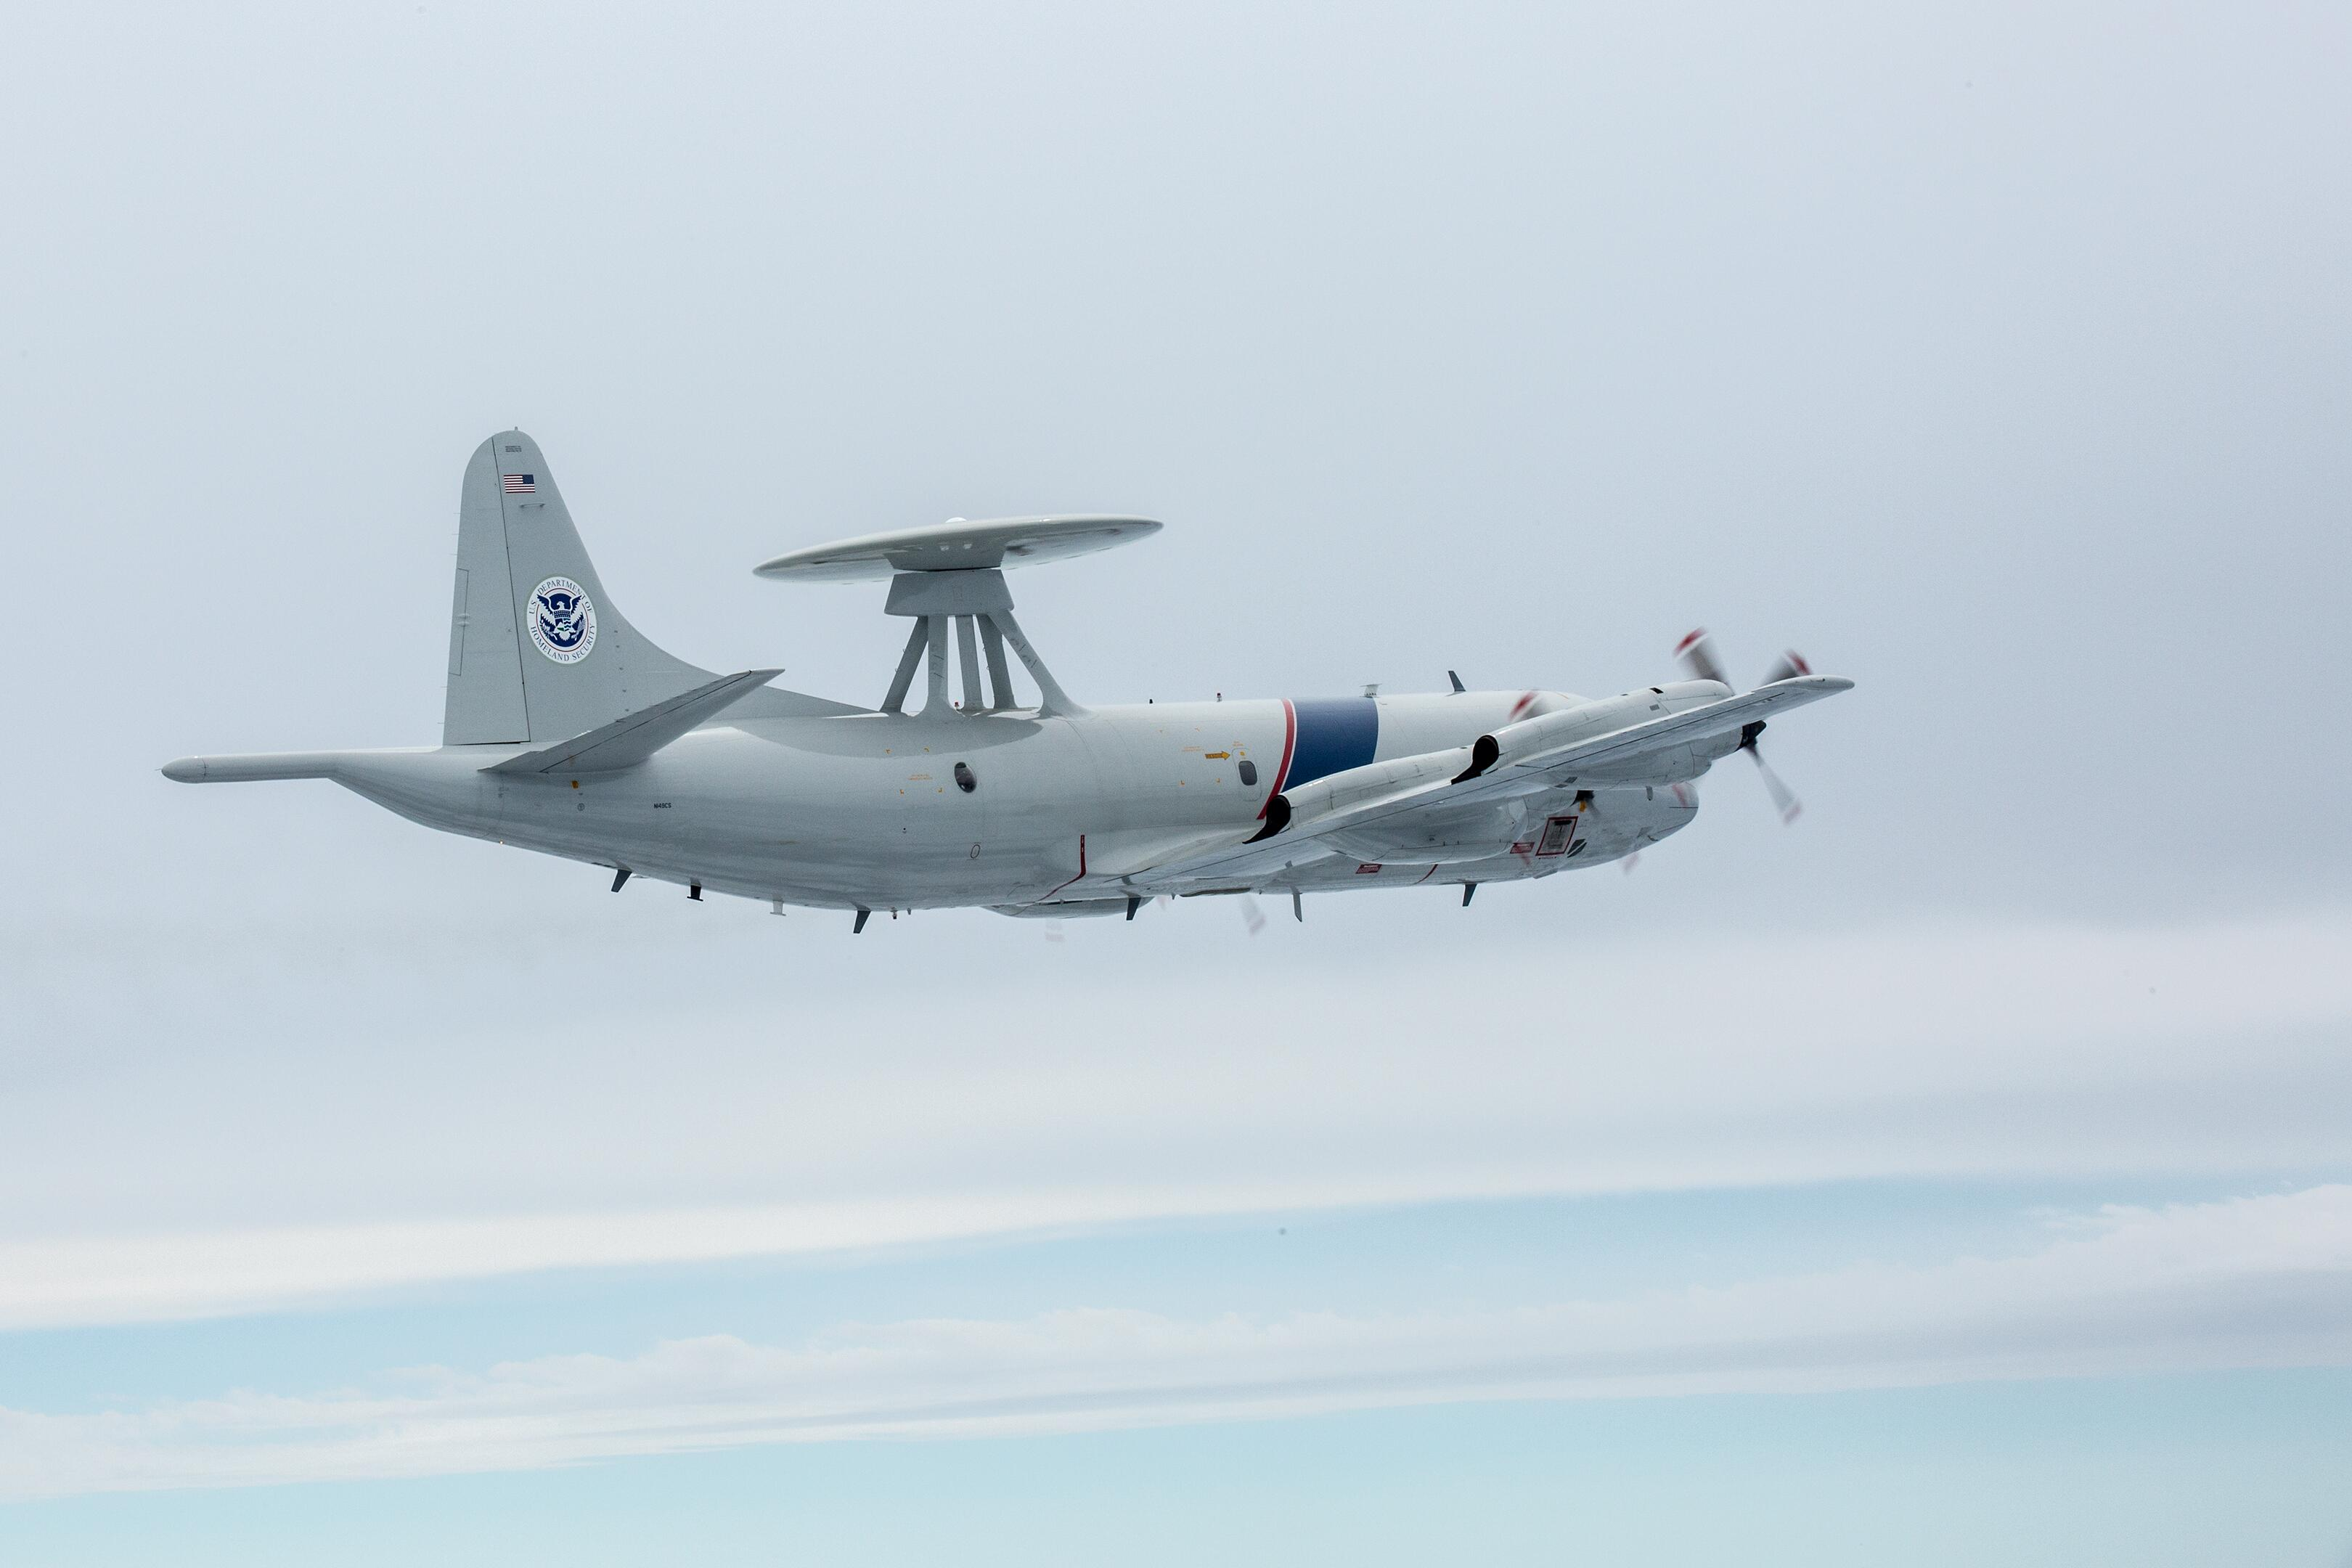 P-3 Airborne Early Warning aircraft